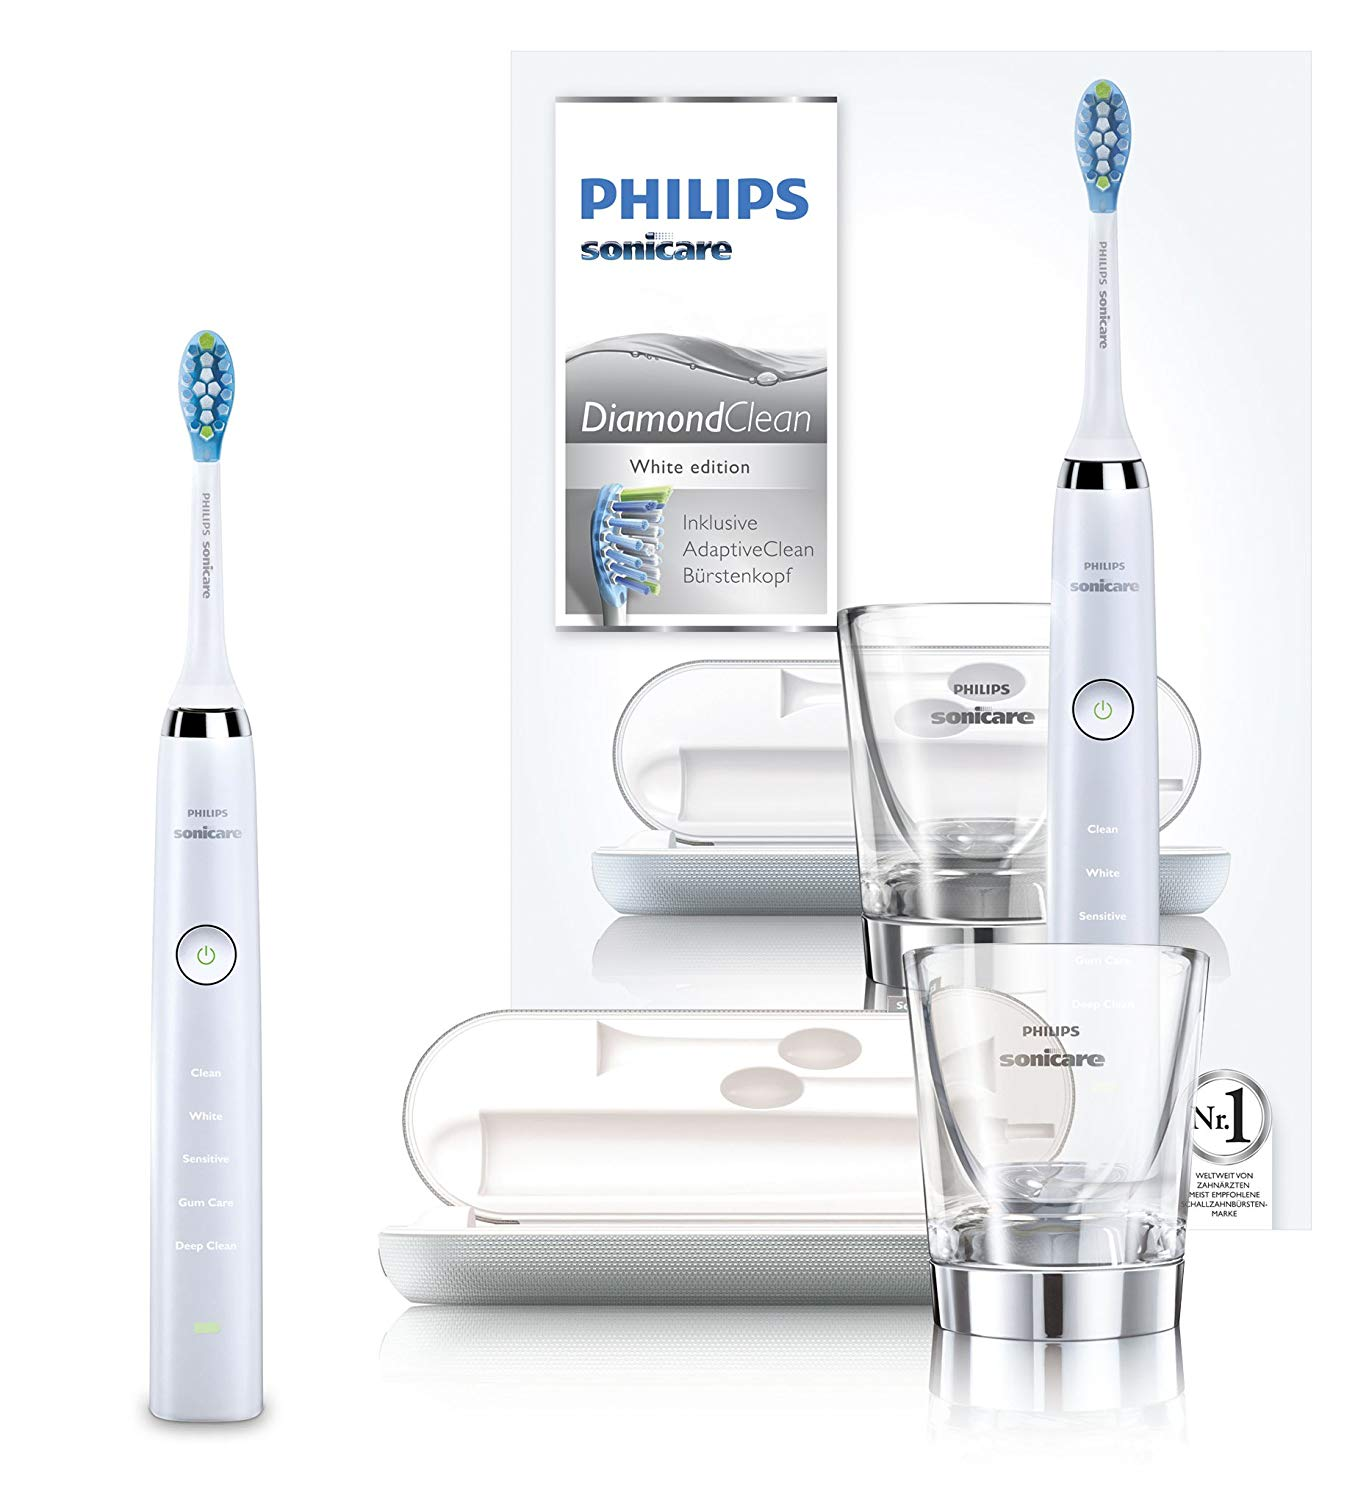 Philips SoniCare Schallzahnbürste amazon